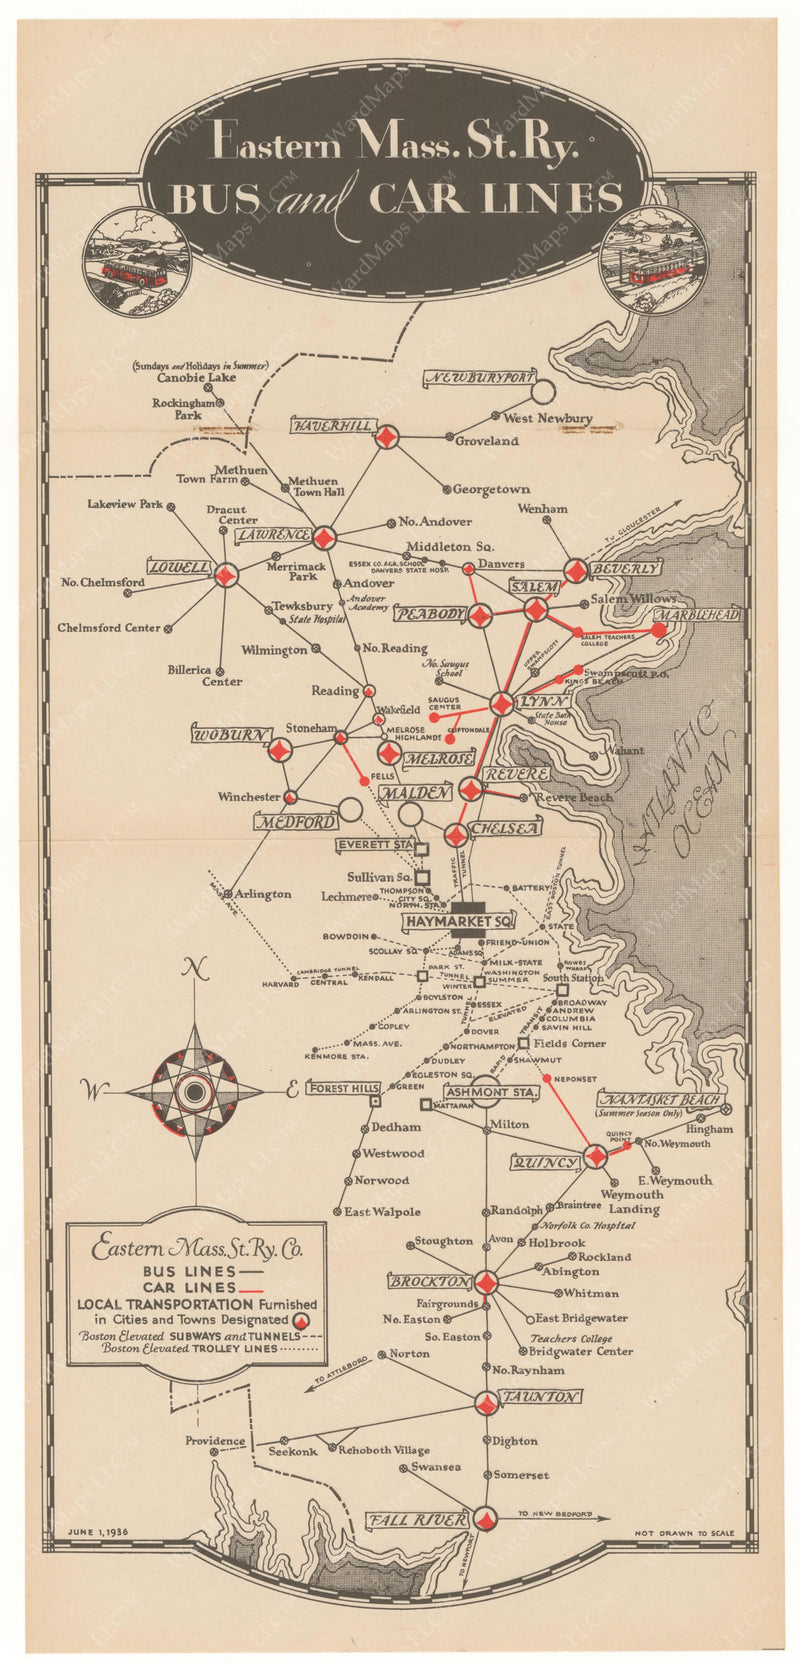 Eastern Mass. Street Railway Co. Bus and Car Lines Map 1936